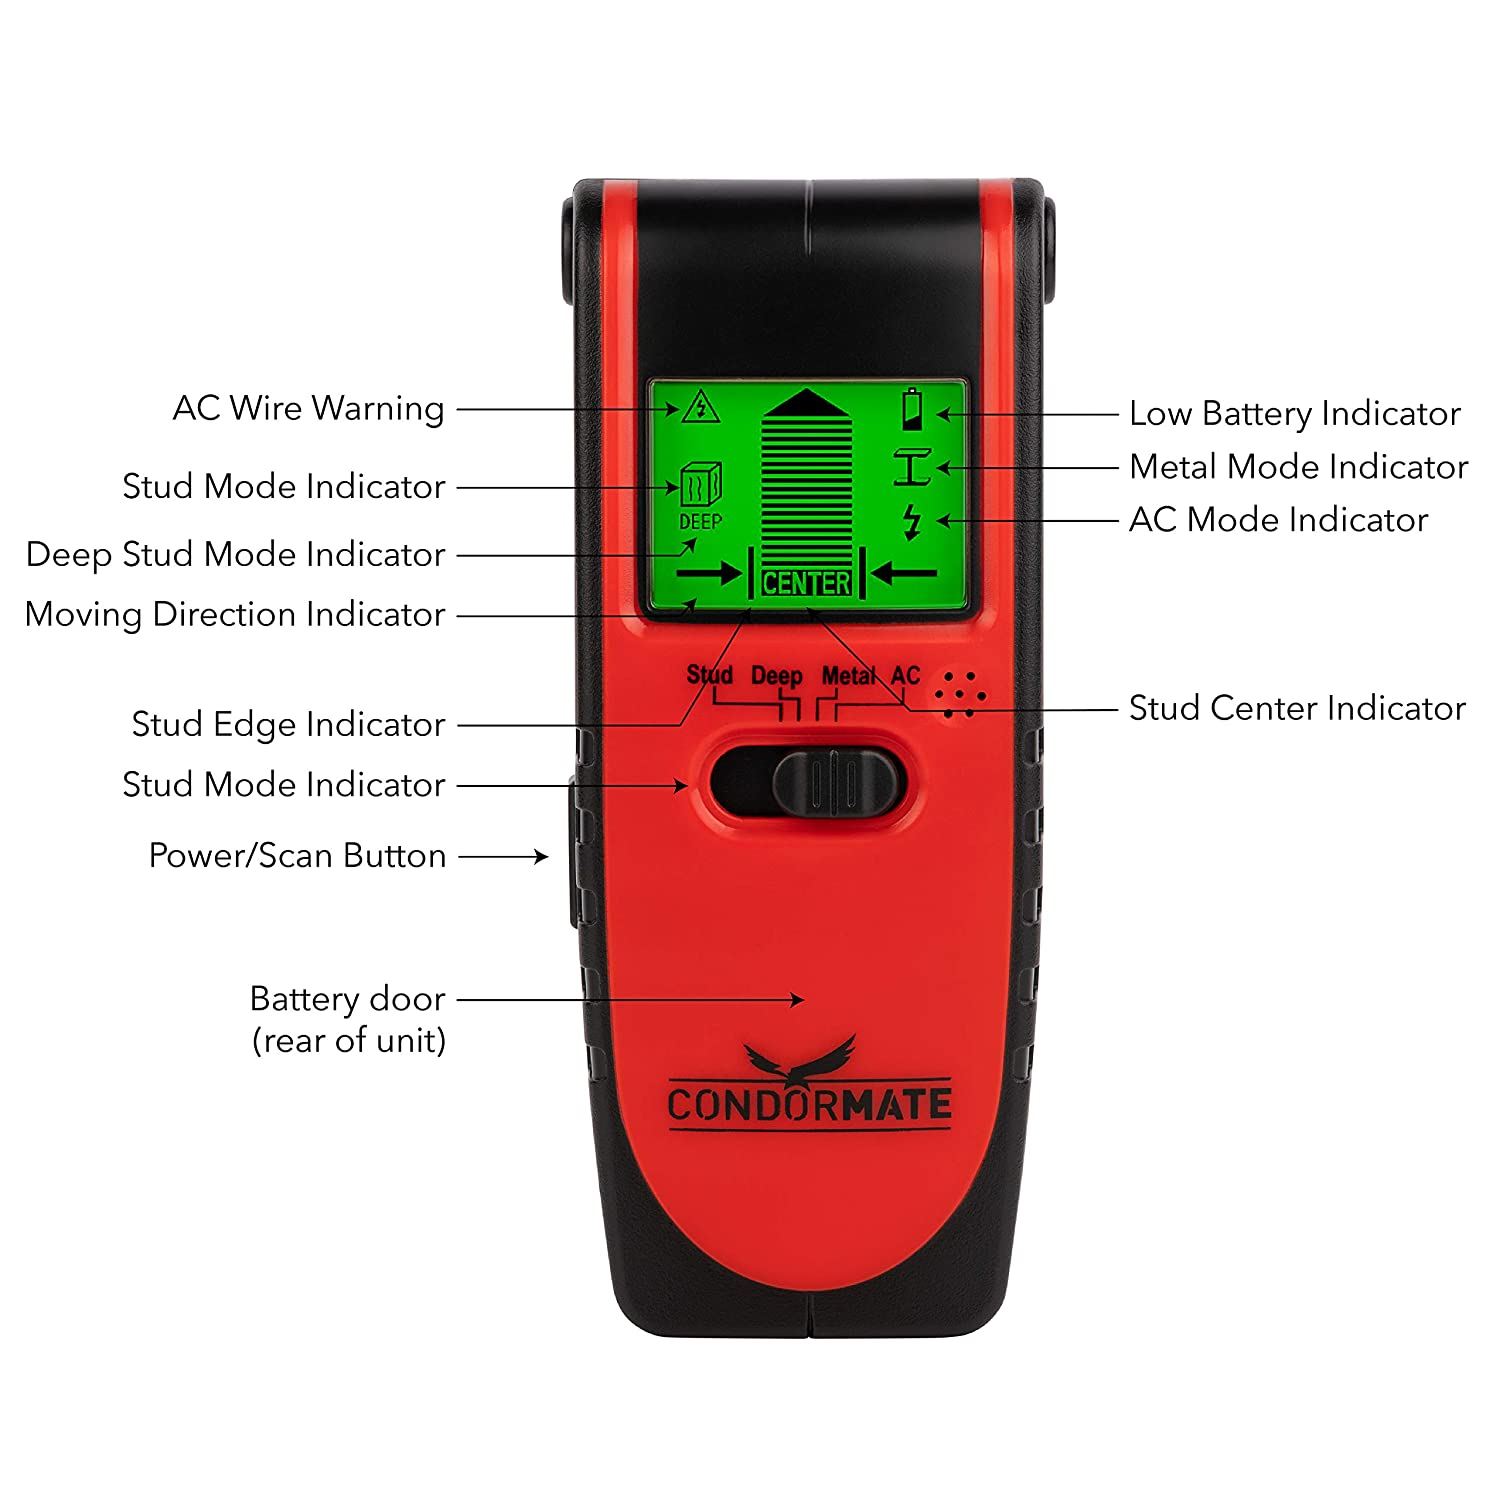 AC Live Wire Detector Wall Stud Finder by Condor Mate with Easy to Use Auto Calibration Wood Studs and Wooden Joists 3 in 1 Magnetic Stud Centre Finder for Finding Metal Studs